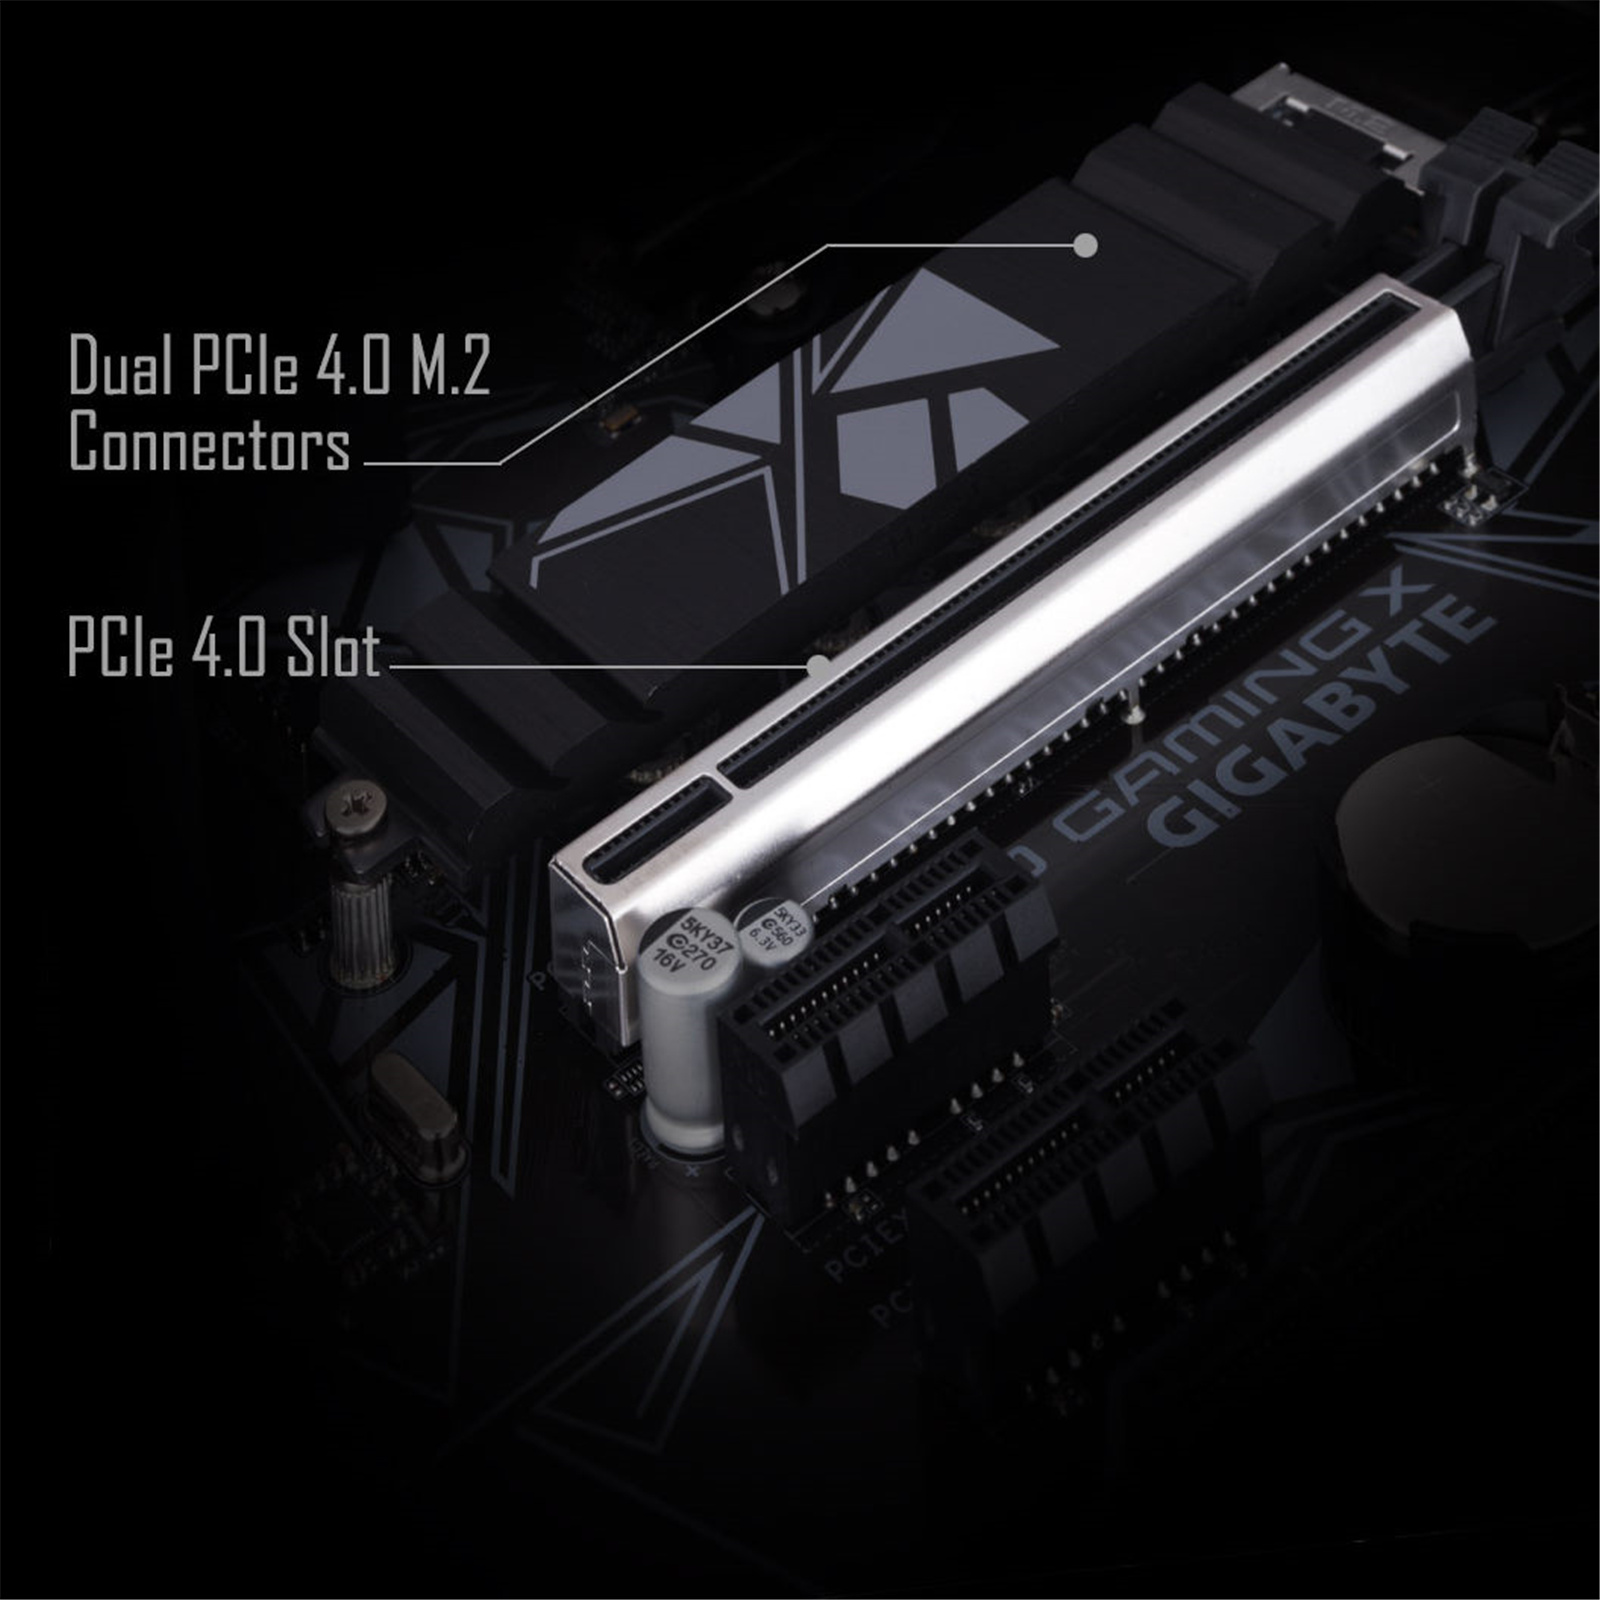 PCIe 4.0 Expansion slot on Gigabyte Gaming X570 Motherboard